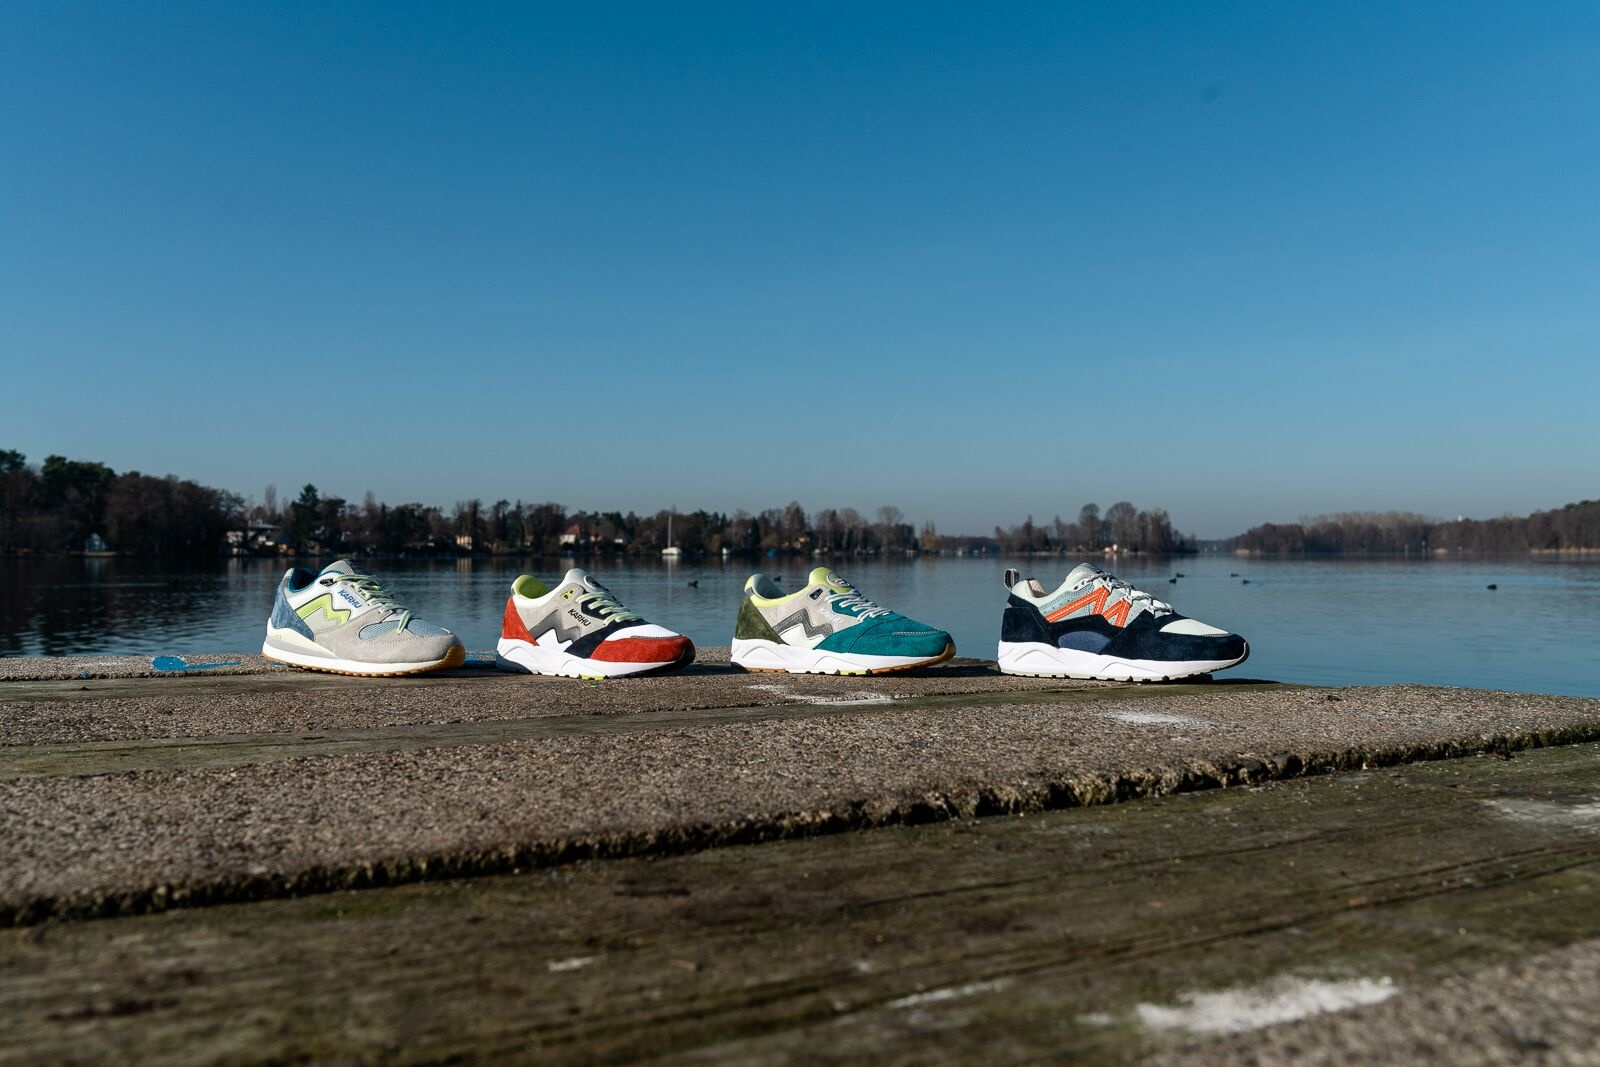 KARHU 'CATCH OF THE DAY' PACK 2